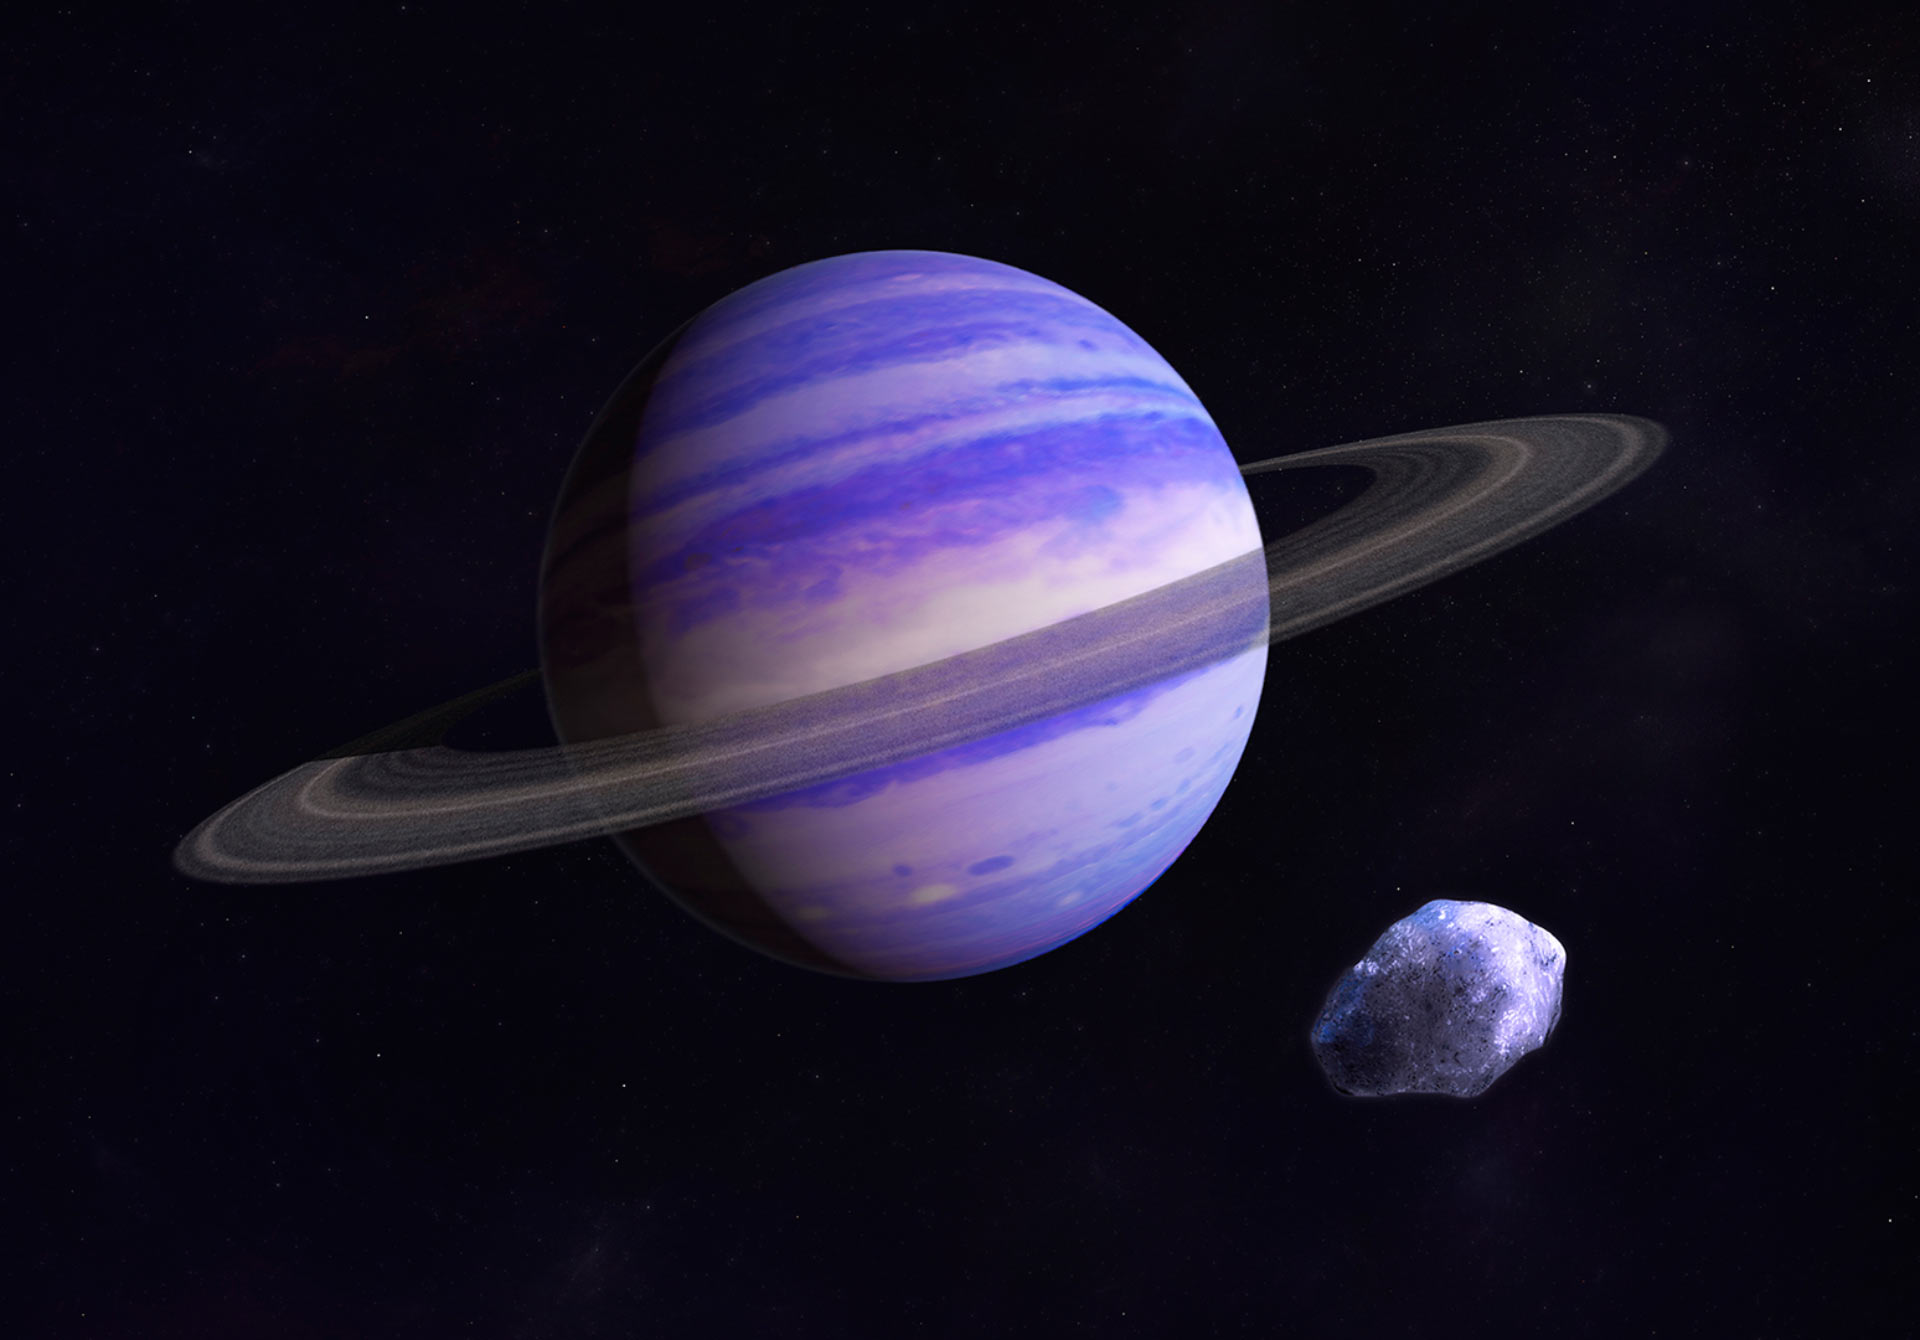 Storms on Uranus and Neptune confined to upper atmosphere